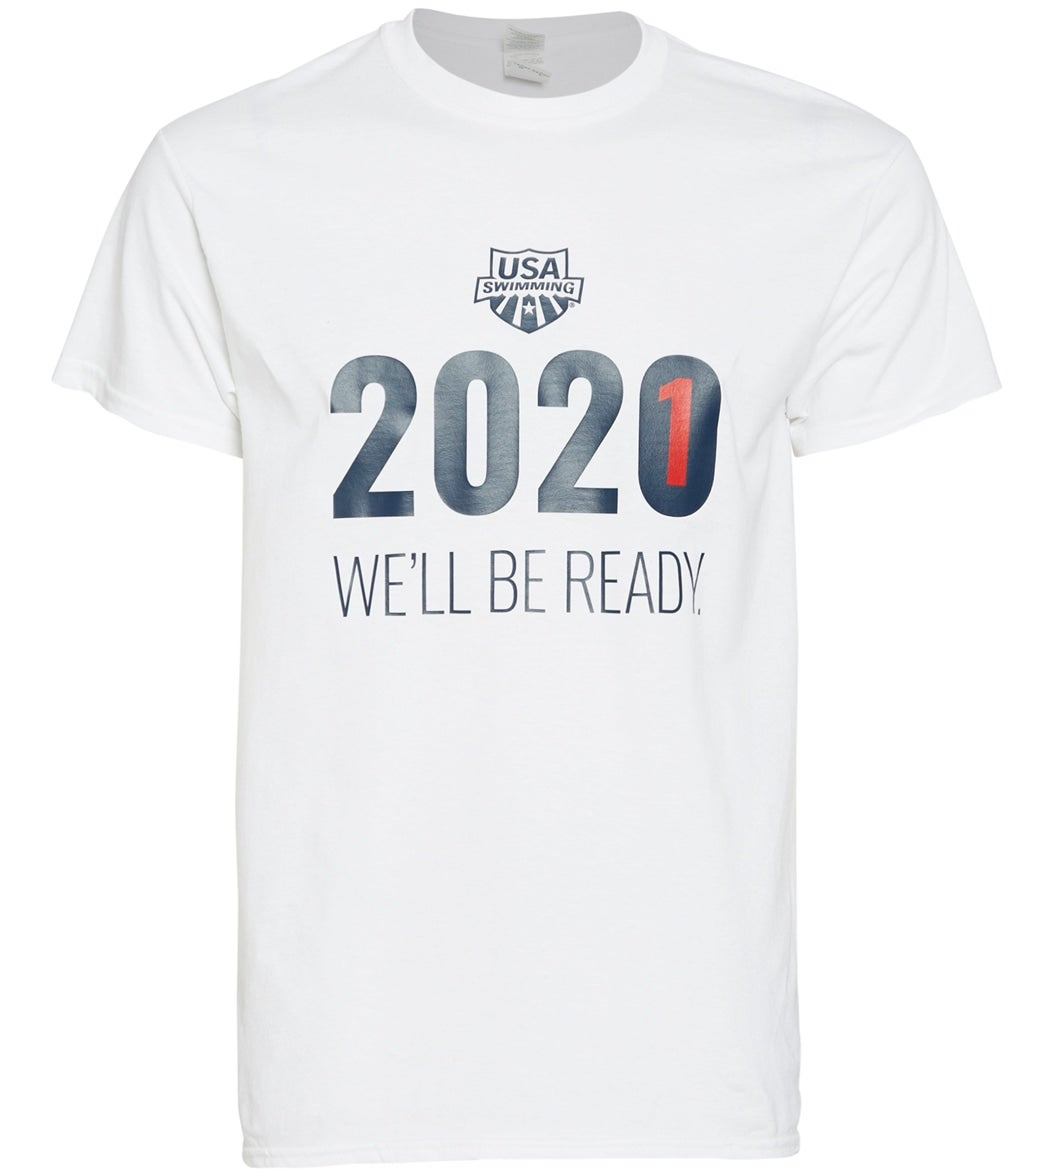 Available in basic colors white, navy and heather gray, this men's tee is sure to highlight that you -- and the swimmers -- are ready for Tokyo in 2021! Proceeds from the sale of this product will go to support U.S. National Team athletes.|https://www.swimoutlet.com/p/usa-swimming-mens-2021-we-will-be-ready-crew-neck-t-shirt-8197128/?color=10890|0|stt2